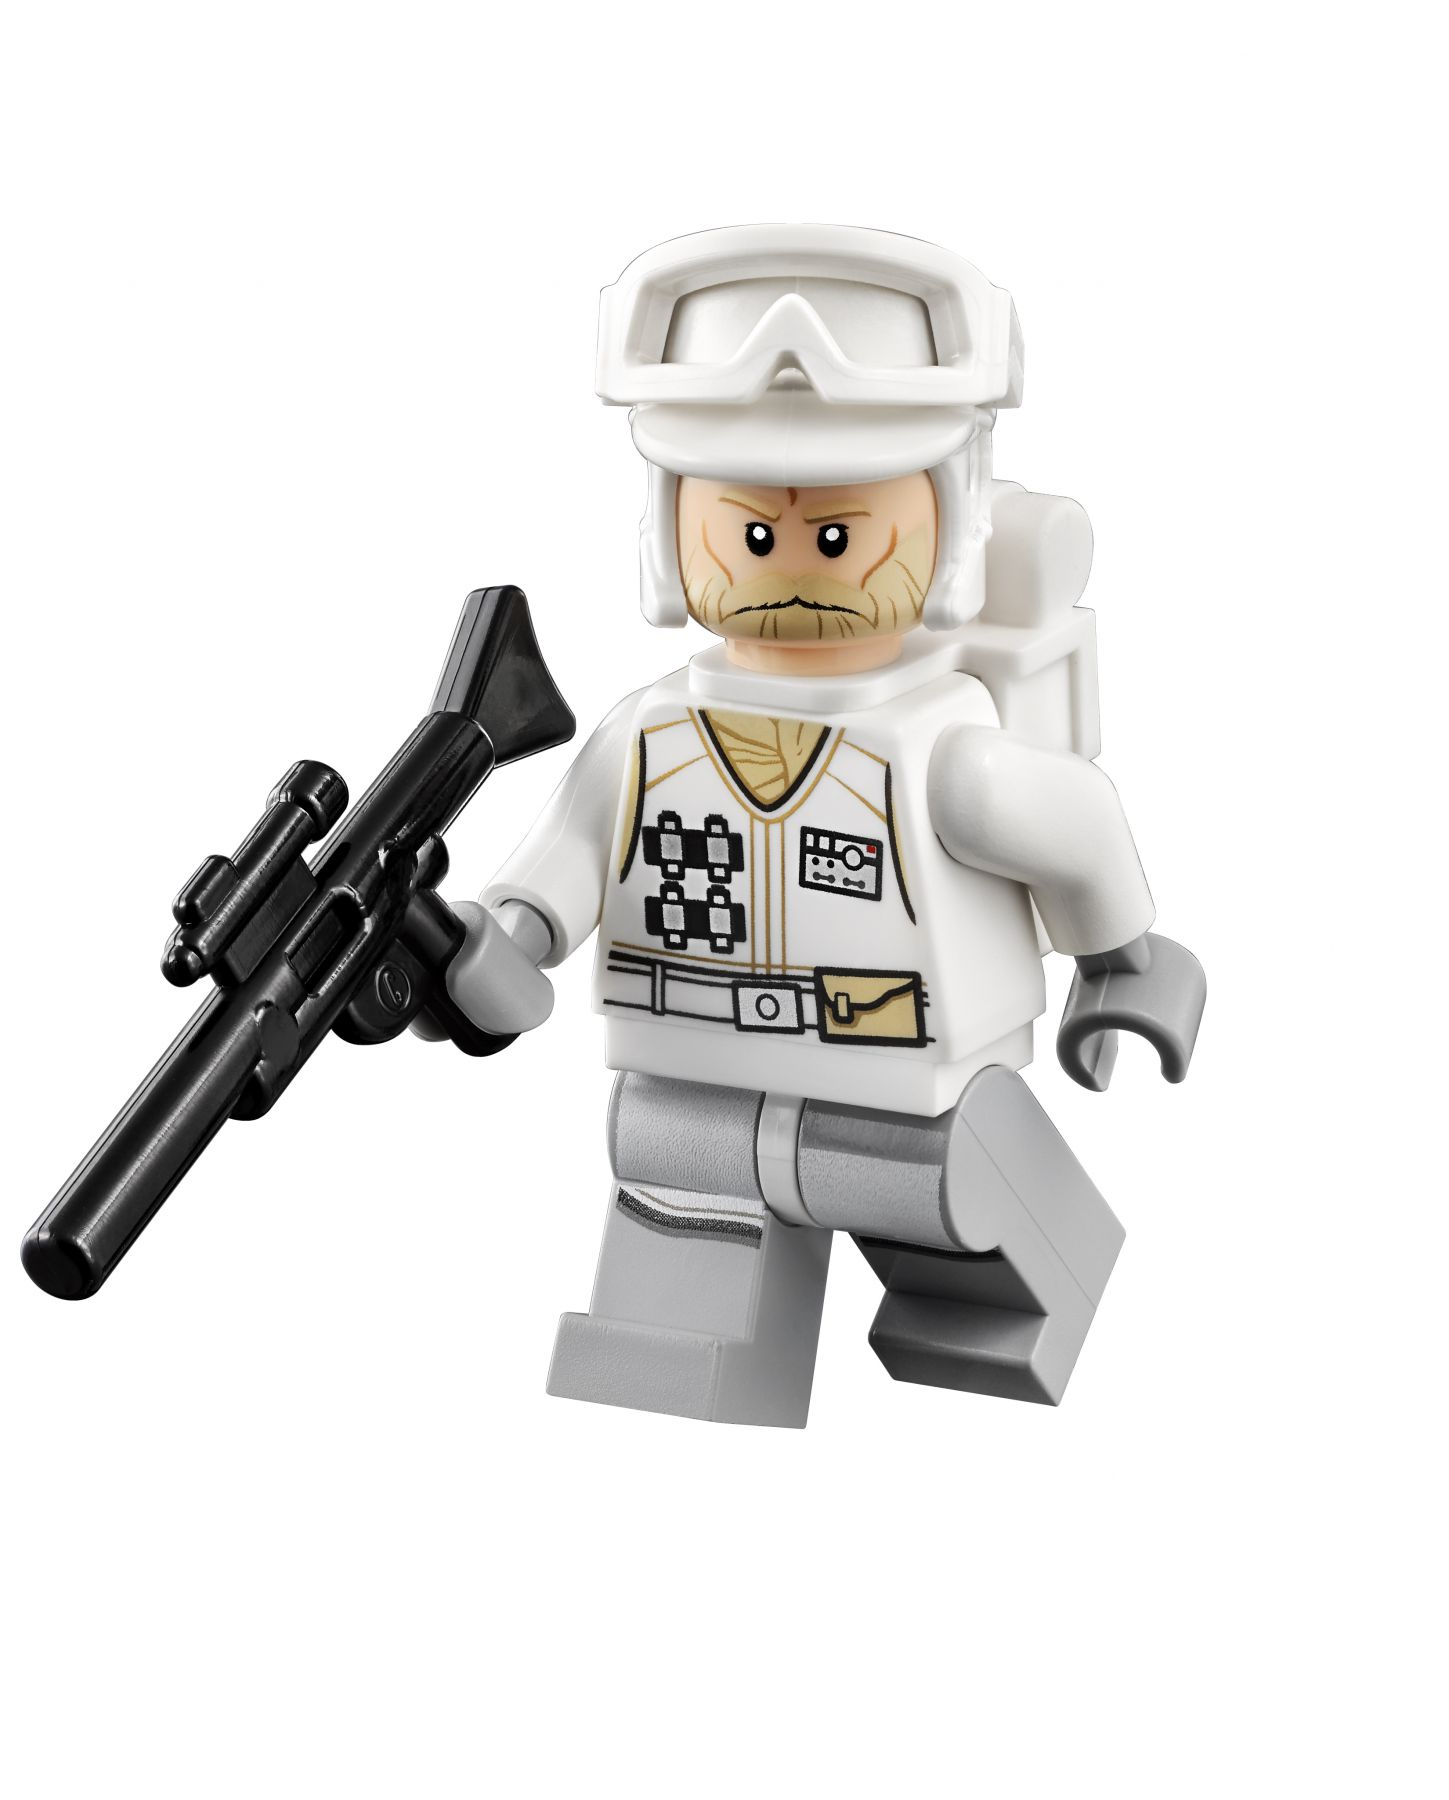 LEGO Star Wars 75098 Angriff auf Hoth™ LEGO-75098-Assault-on-Hoth-Minifigure_04.jpg